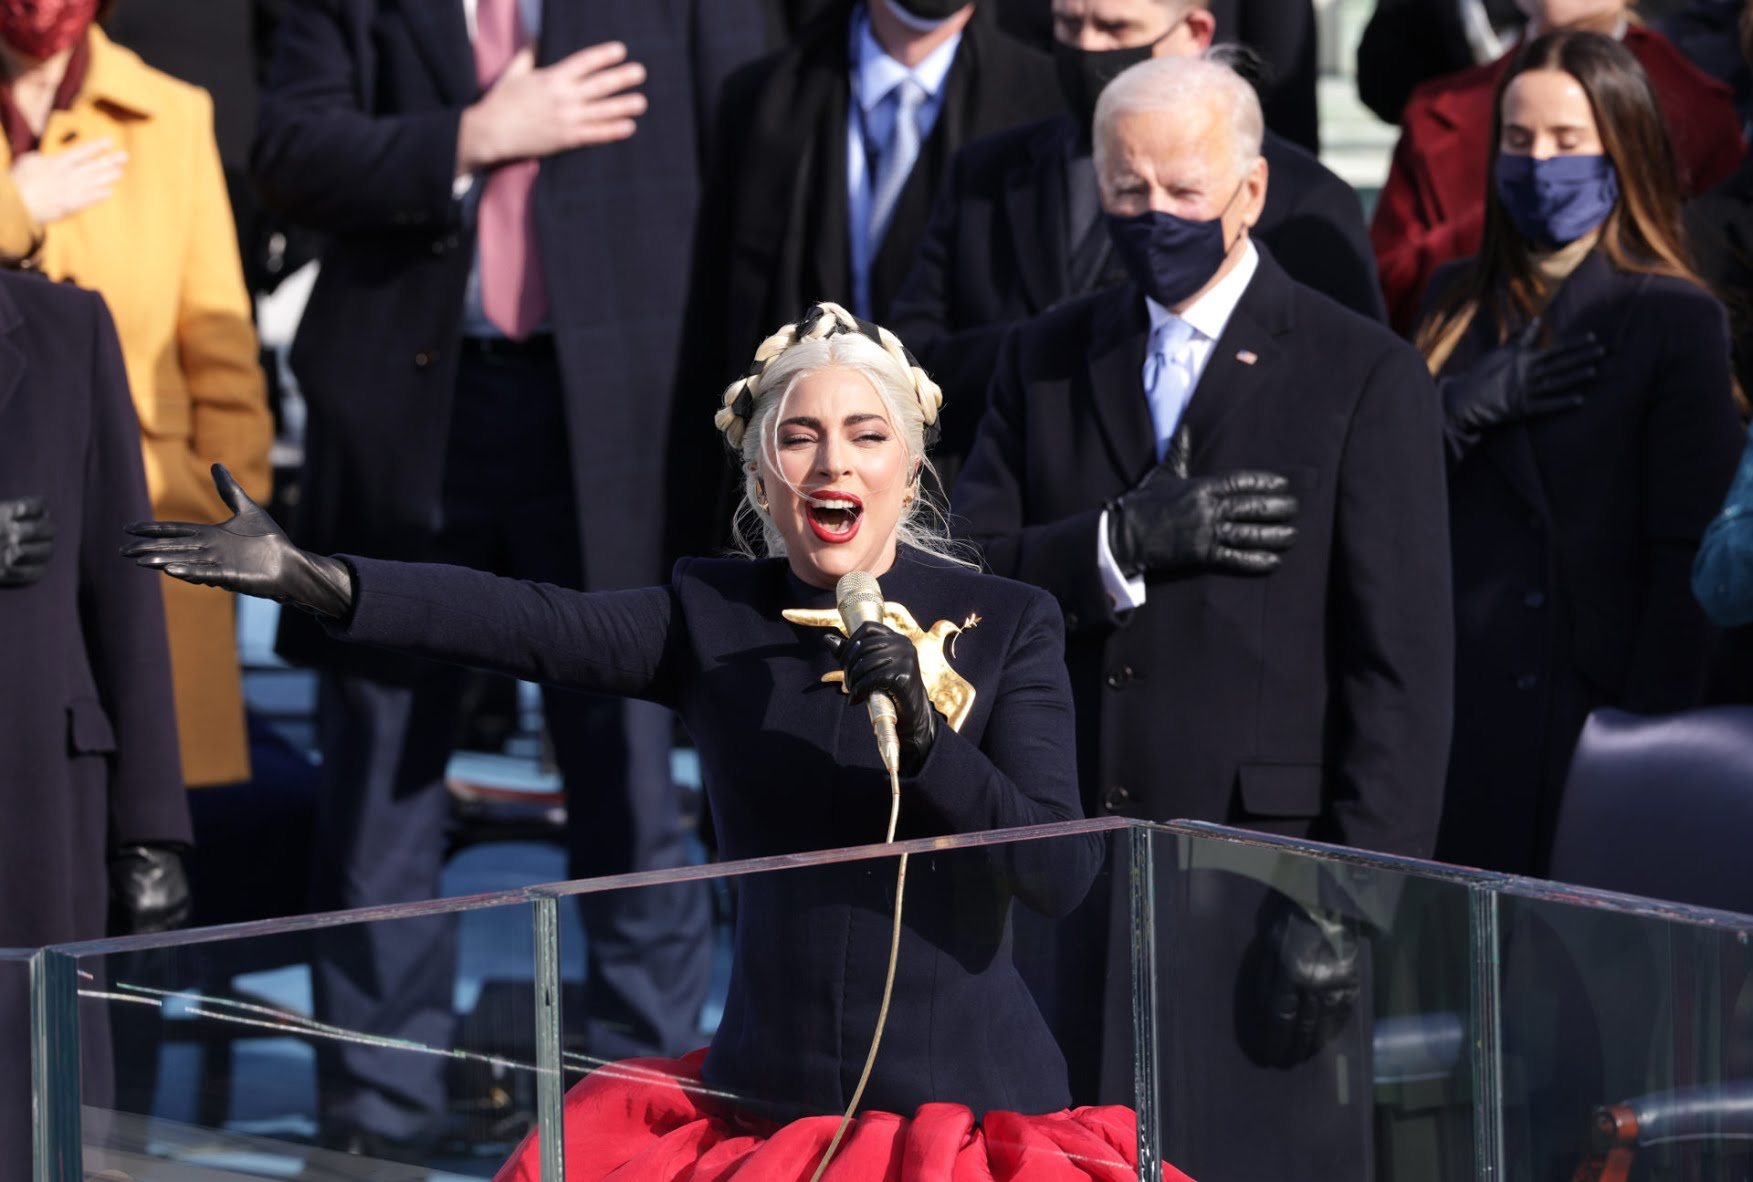 Lady Gaga sings the National Anthem at the inauguration. (Alex Wong/Getty Images)